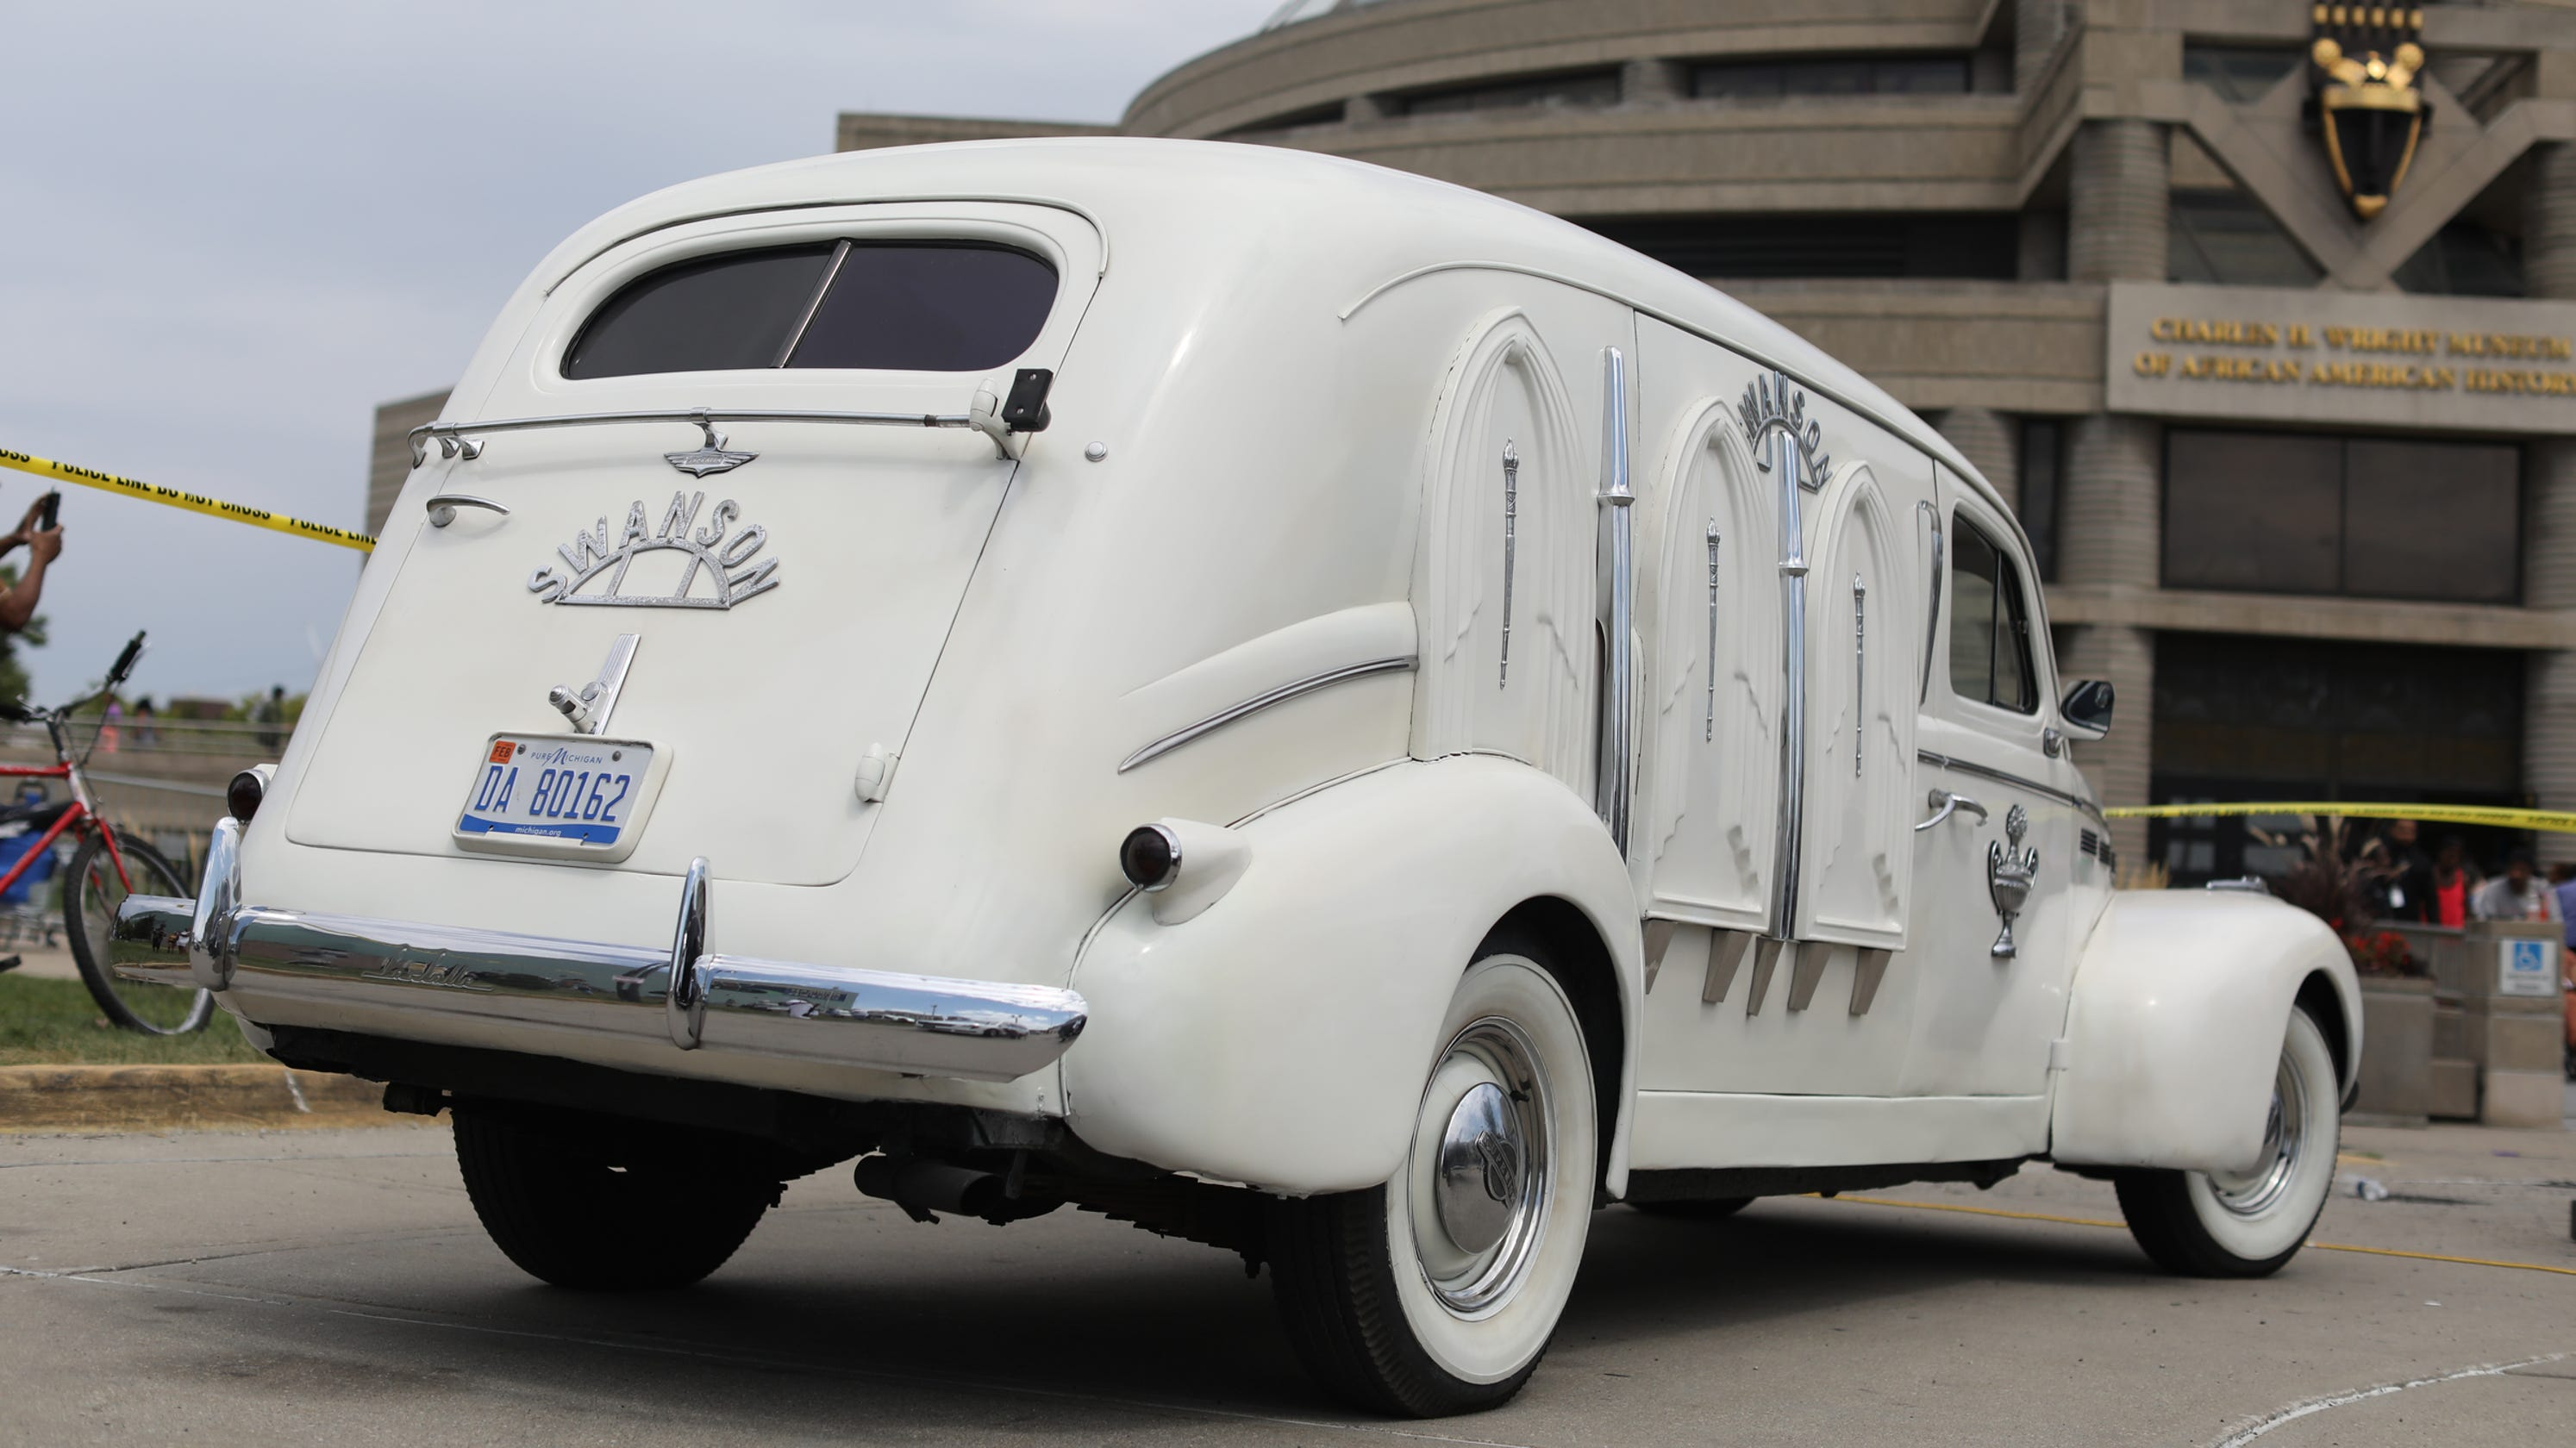 Classic 1940 lasalle hearse made by cadillac carries aretha franklin izmirmasajfo